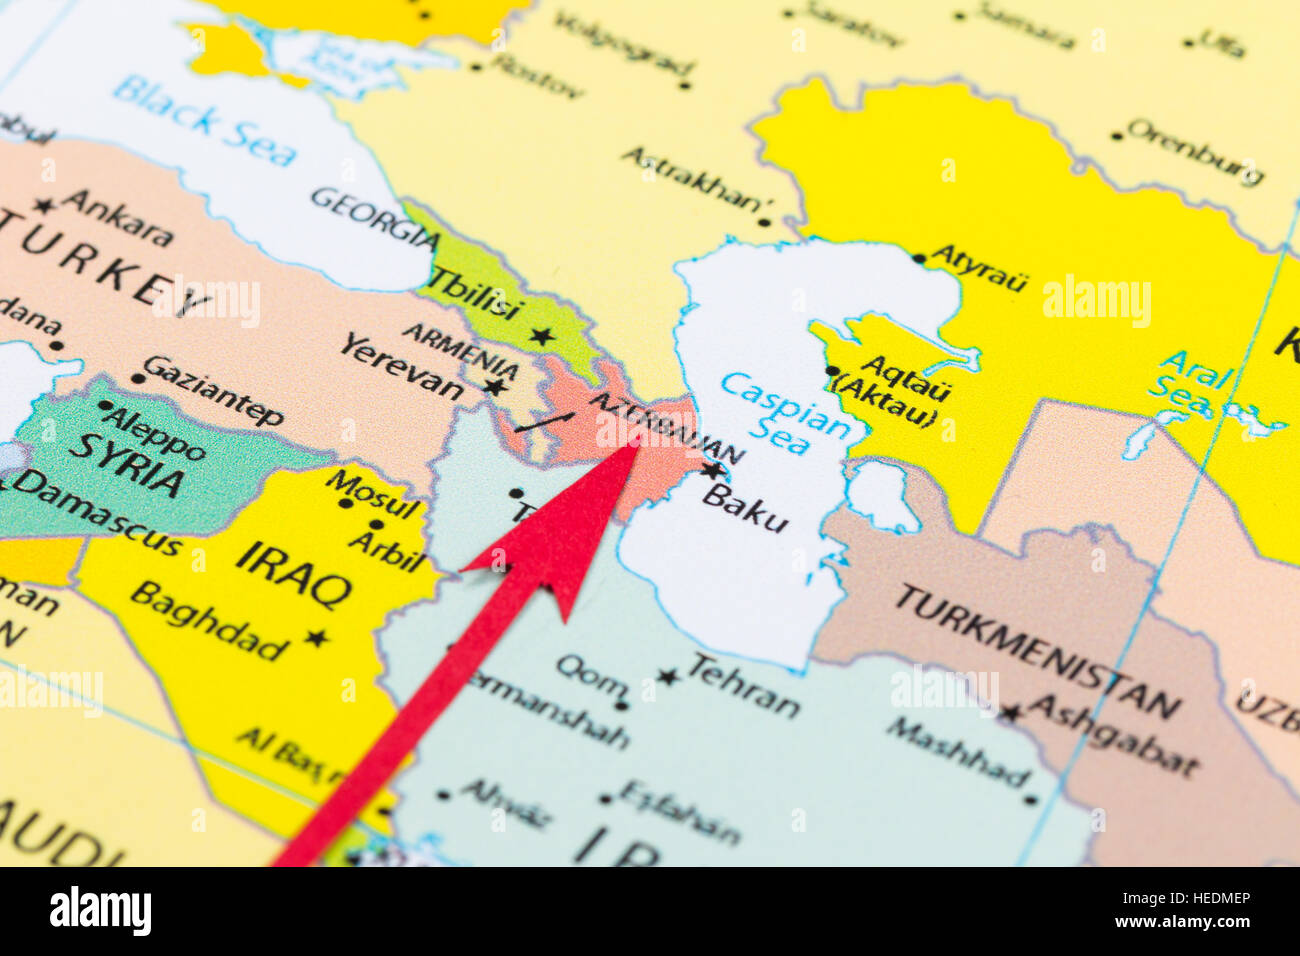 Red arrow pointing Azerbaijan on the map of Asia continent Stock